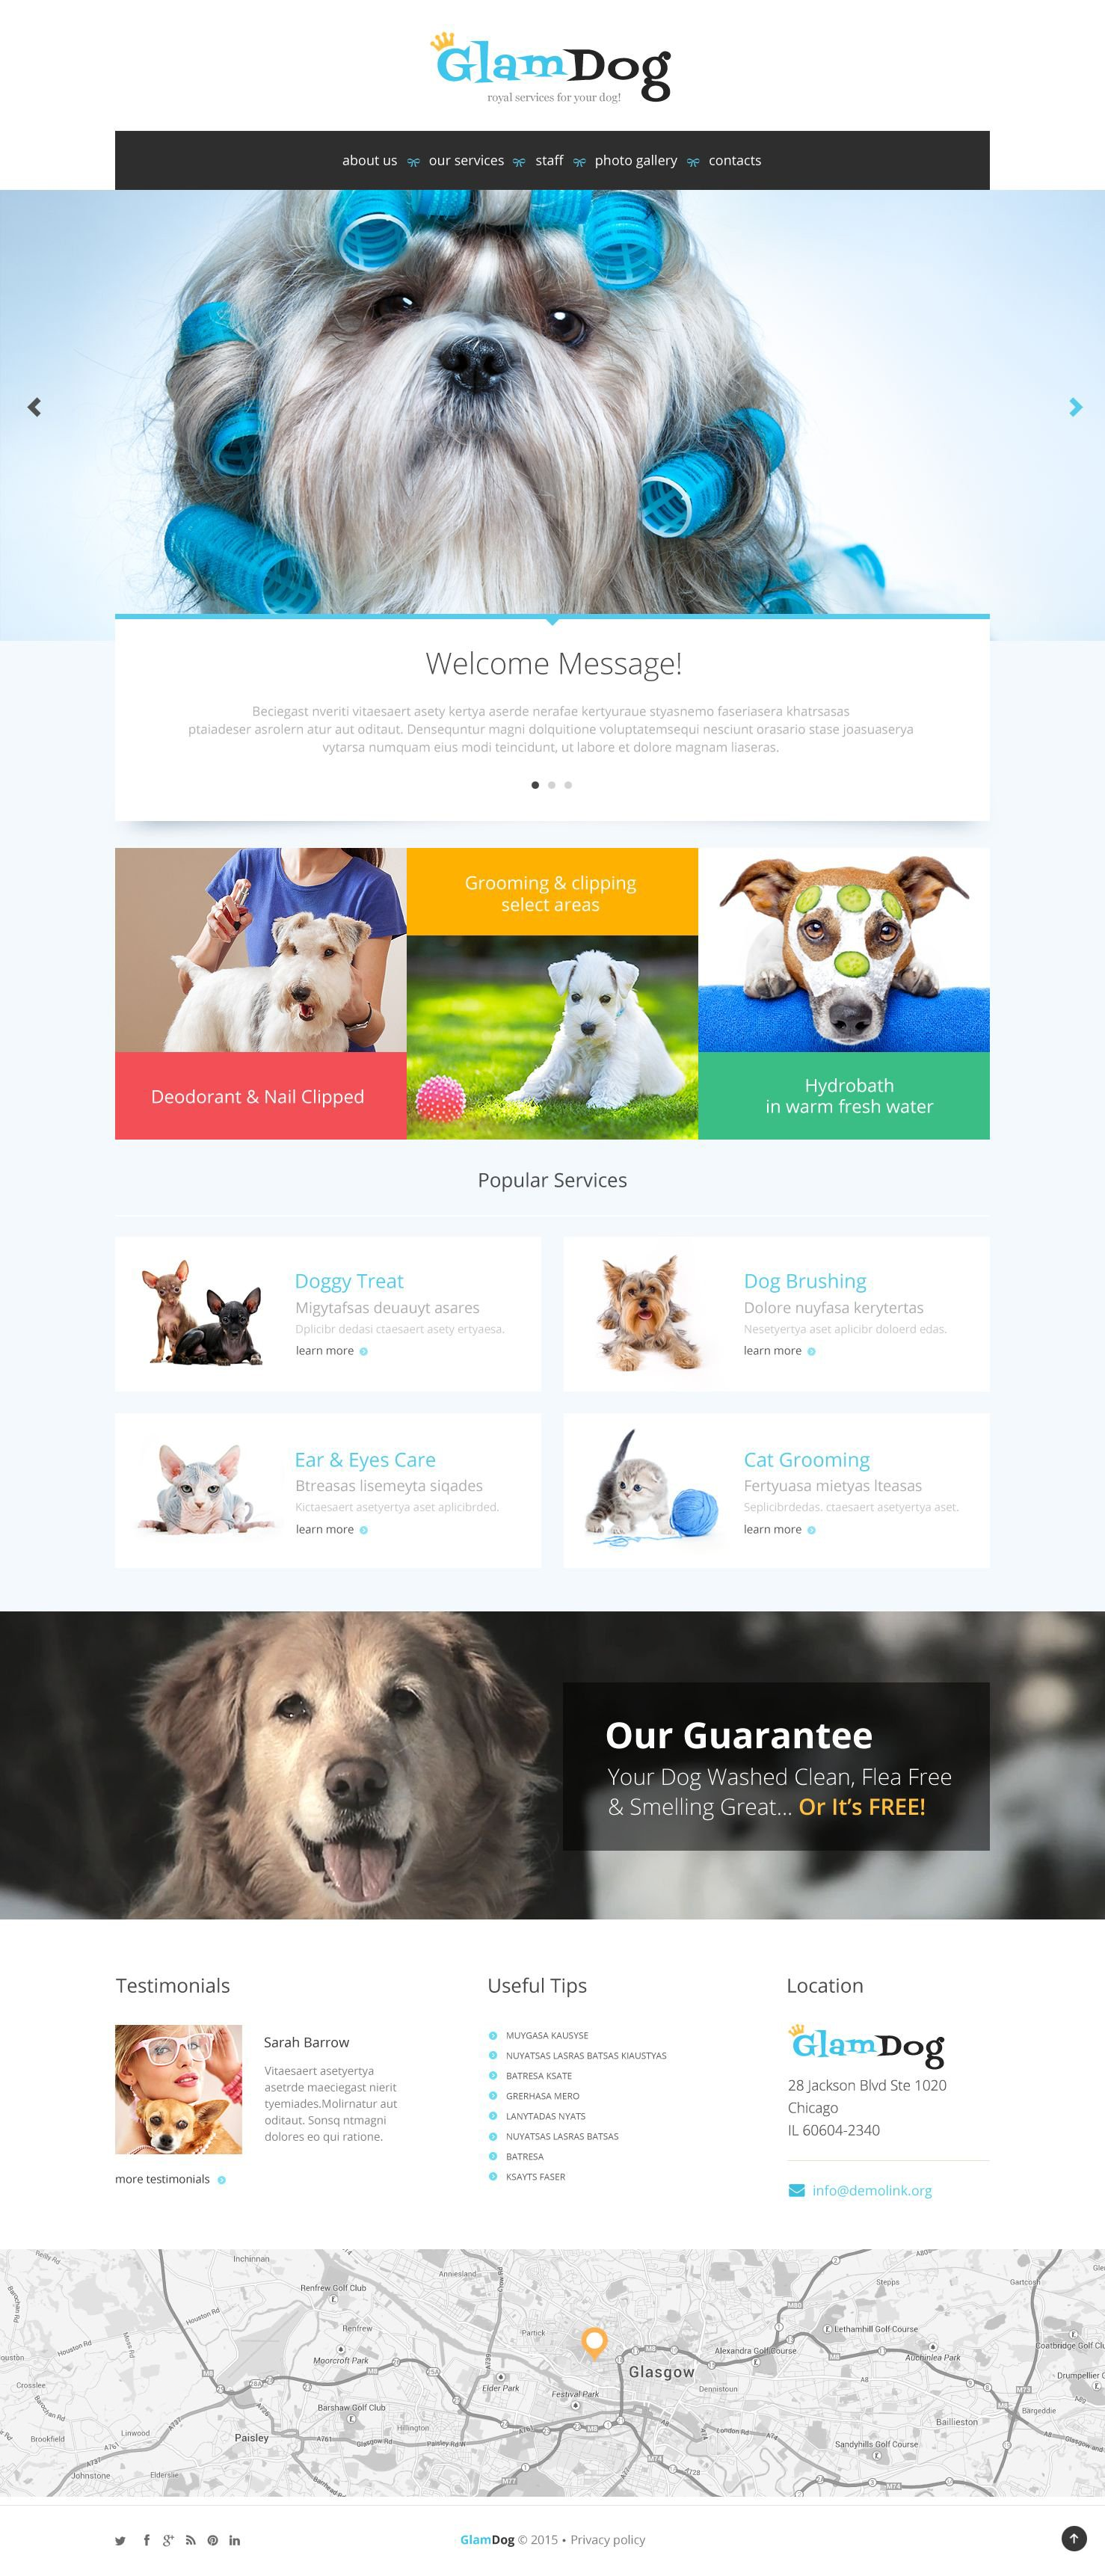 The Glam Dog Responsive Javascript Animated Design 53778, one of the best website templates of its kind (animals & pets, most popular), also known as glam dog website template, spa website template, cosmetic website template, beauty website template, product website template, staff website template, professional website template, style website template, doggy website template, dog club website template, dogs website template, pet website template, animal website template, shows website template, certificates website template, animals website template, cat website template, puppy website template, training website template, pet website template, dogs website template, dog website template, breeder website template, pedigree website template, forage website template, feed and related with glam dog, spa, cosmetic, beauty, product, staff, professional, style, doggy, dog club, dogs, pet, animal, shows, certificates, animals, cat, puppy, training, pet, dogs, dog, breeder, pedigree, forage, feed, etc.